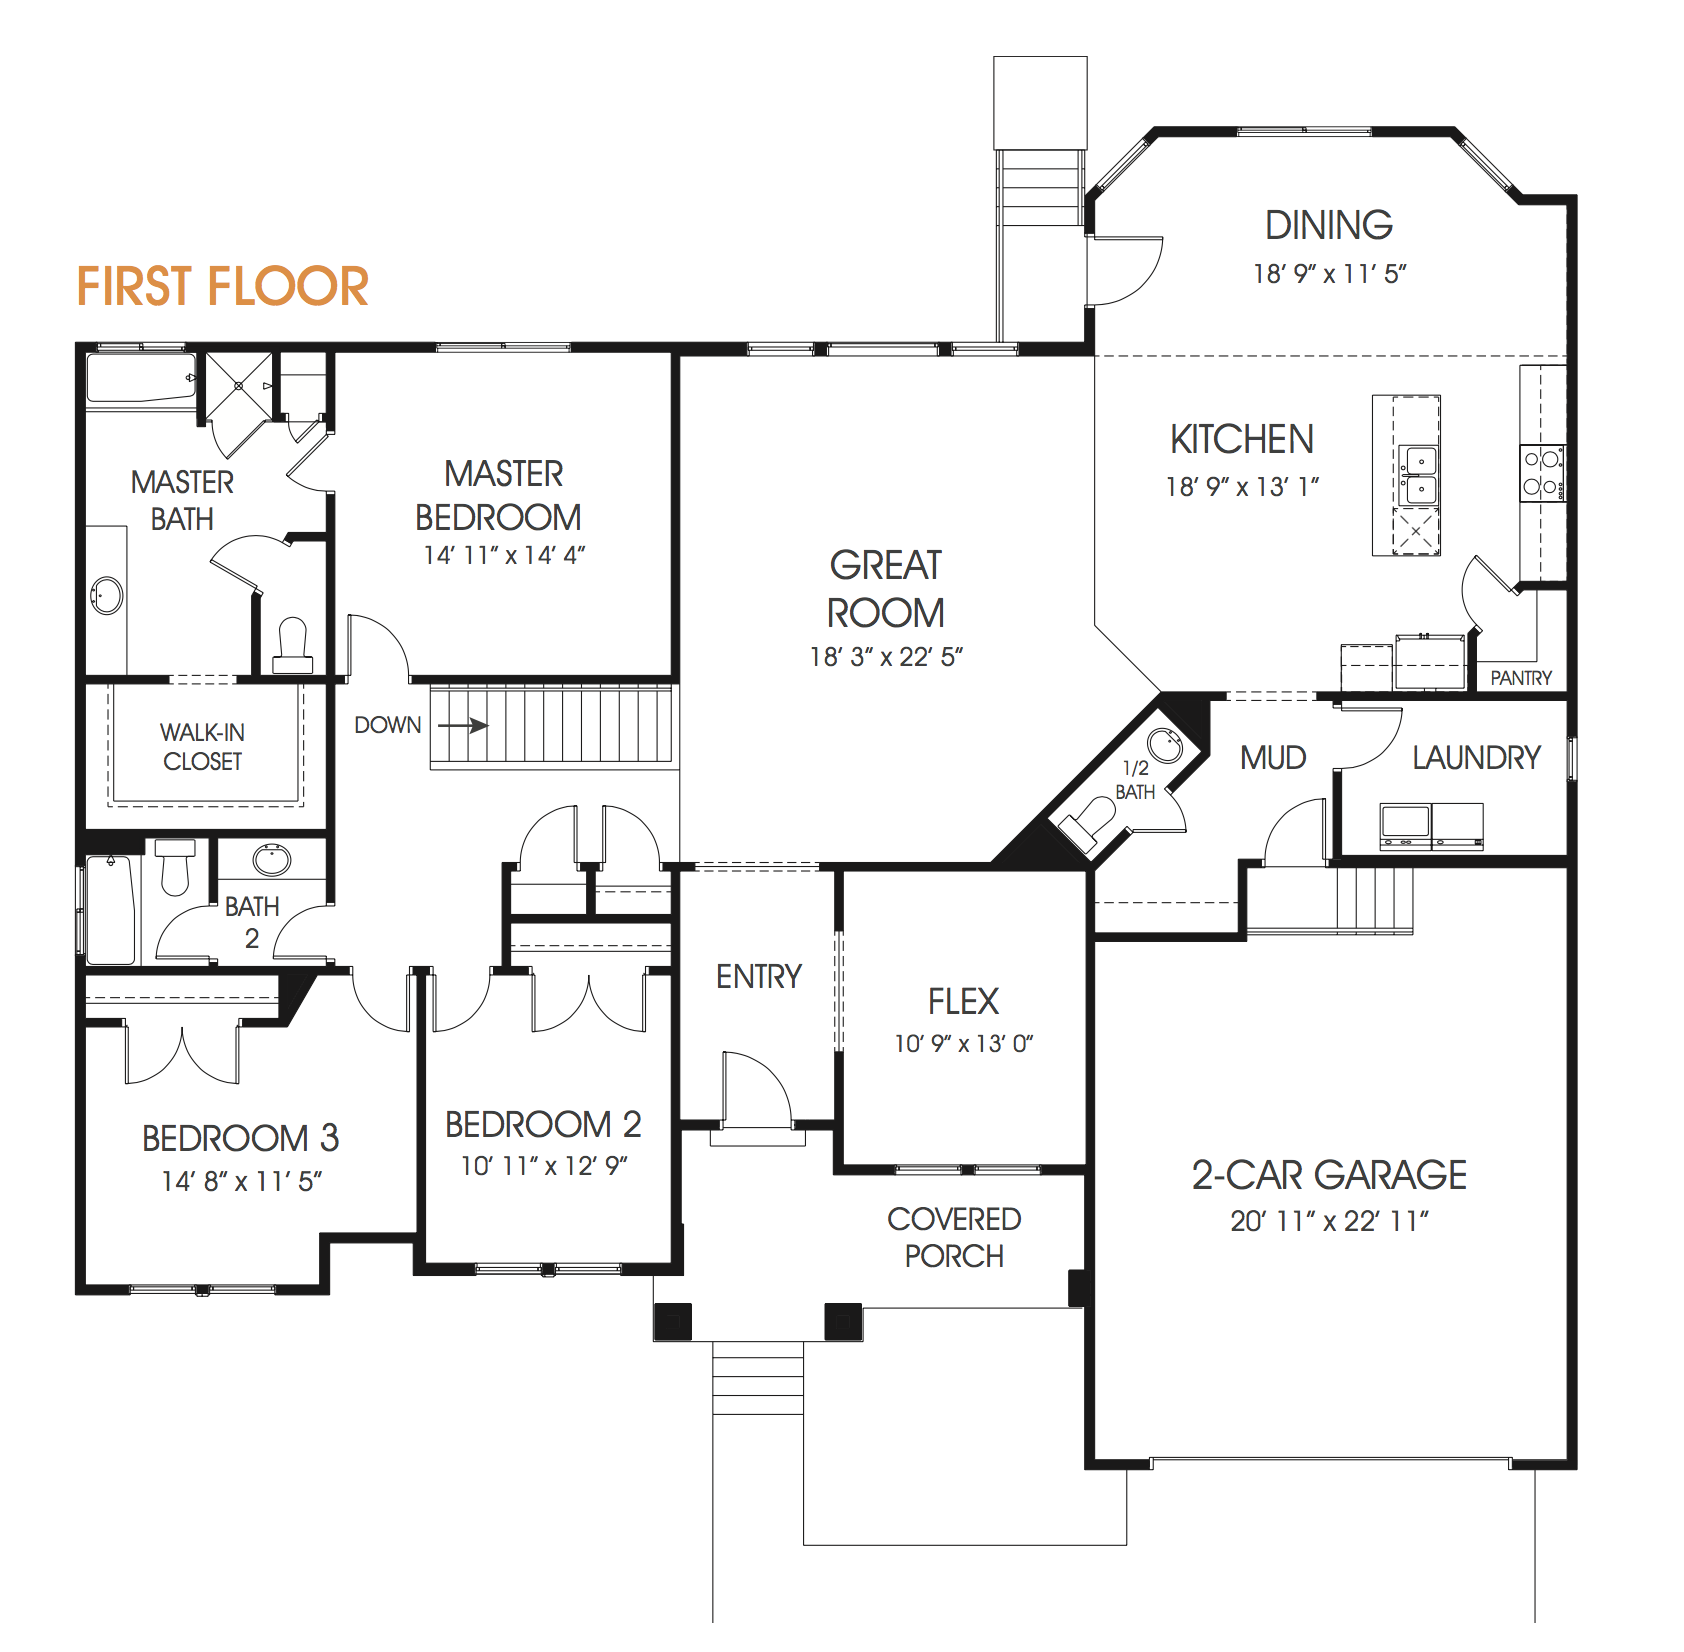 Olivia Is A An Upscale Rambler Floor Plan Spacious With 3 Bedrooms To Meet Your Family S Needs Perfect For Your Ne Floor Plans Little House Plans How To Plan